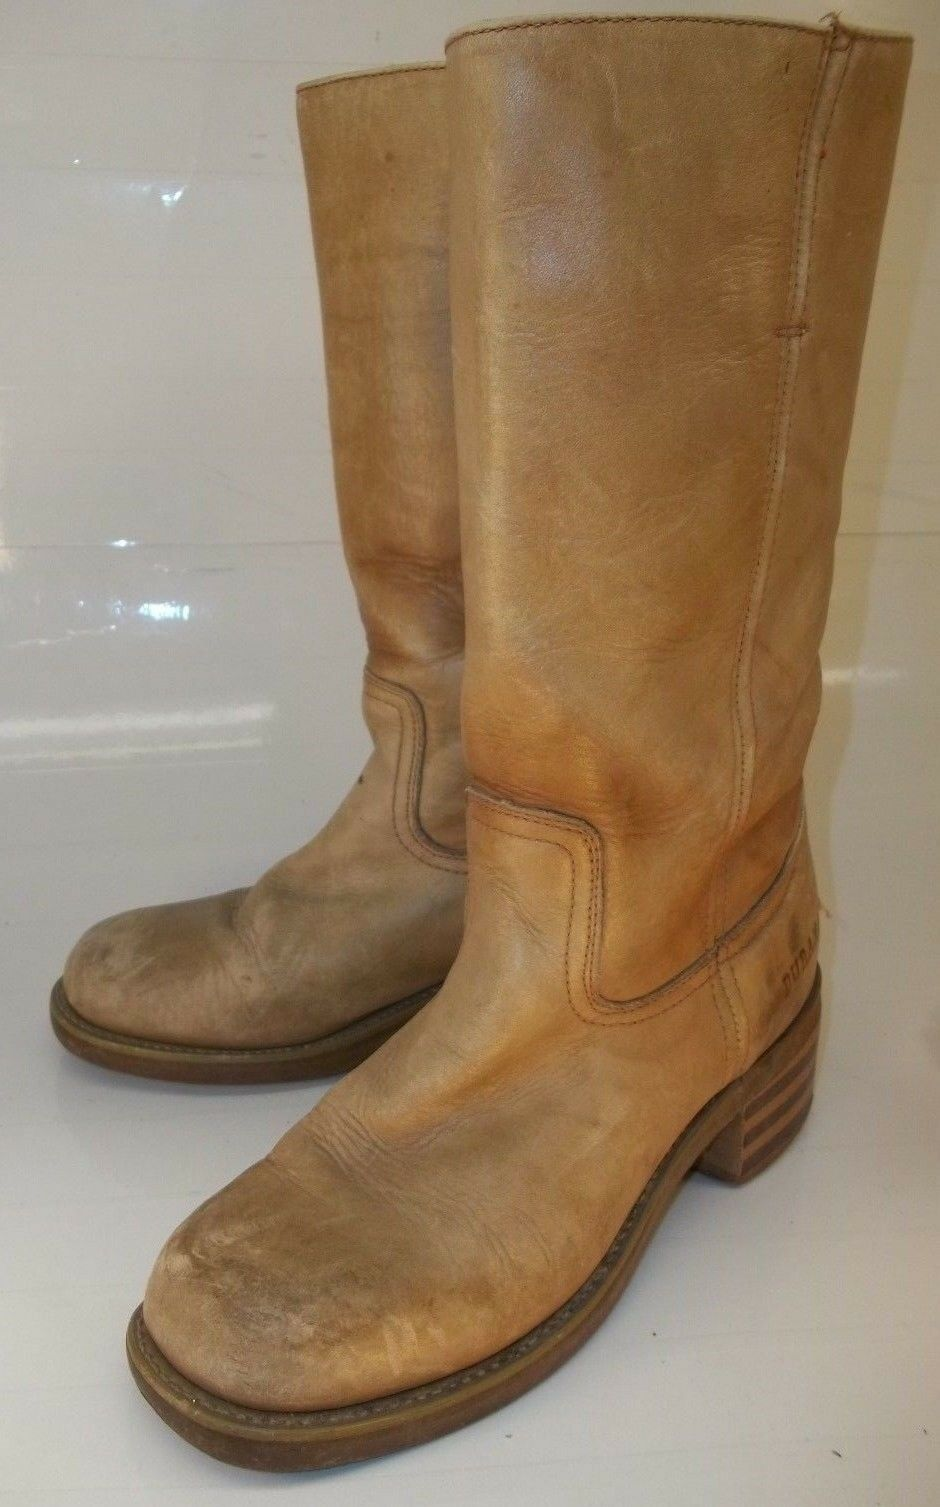 Durango RD2405 Mens Boots US 7M Tan Leather Casual Cowboy Western Work 1585